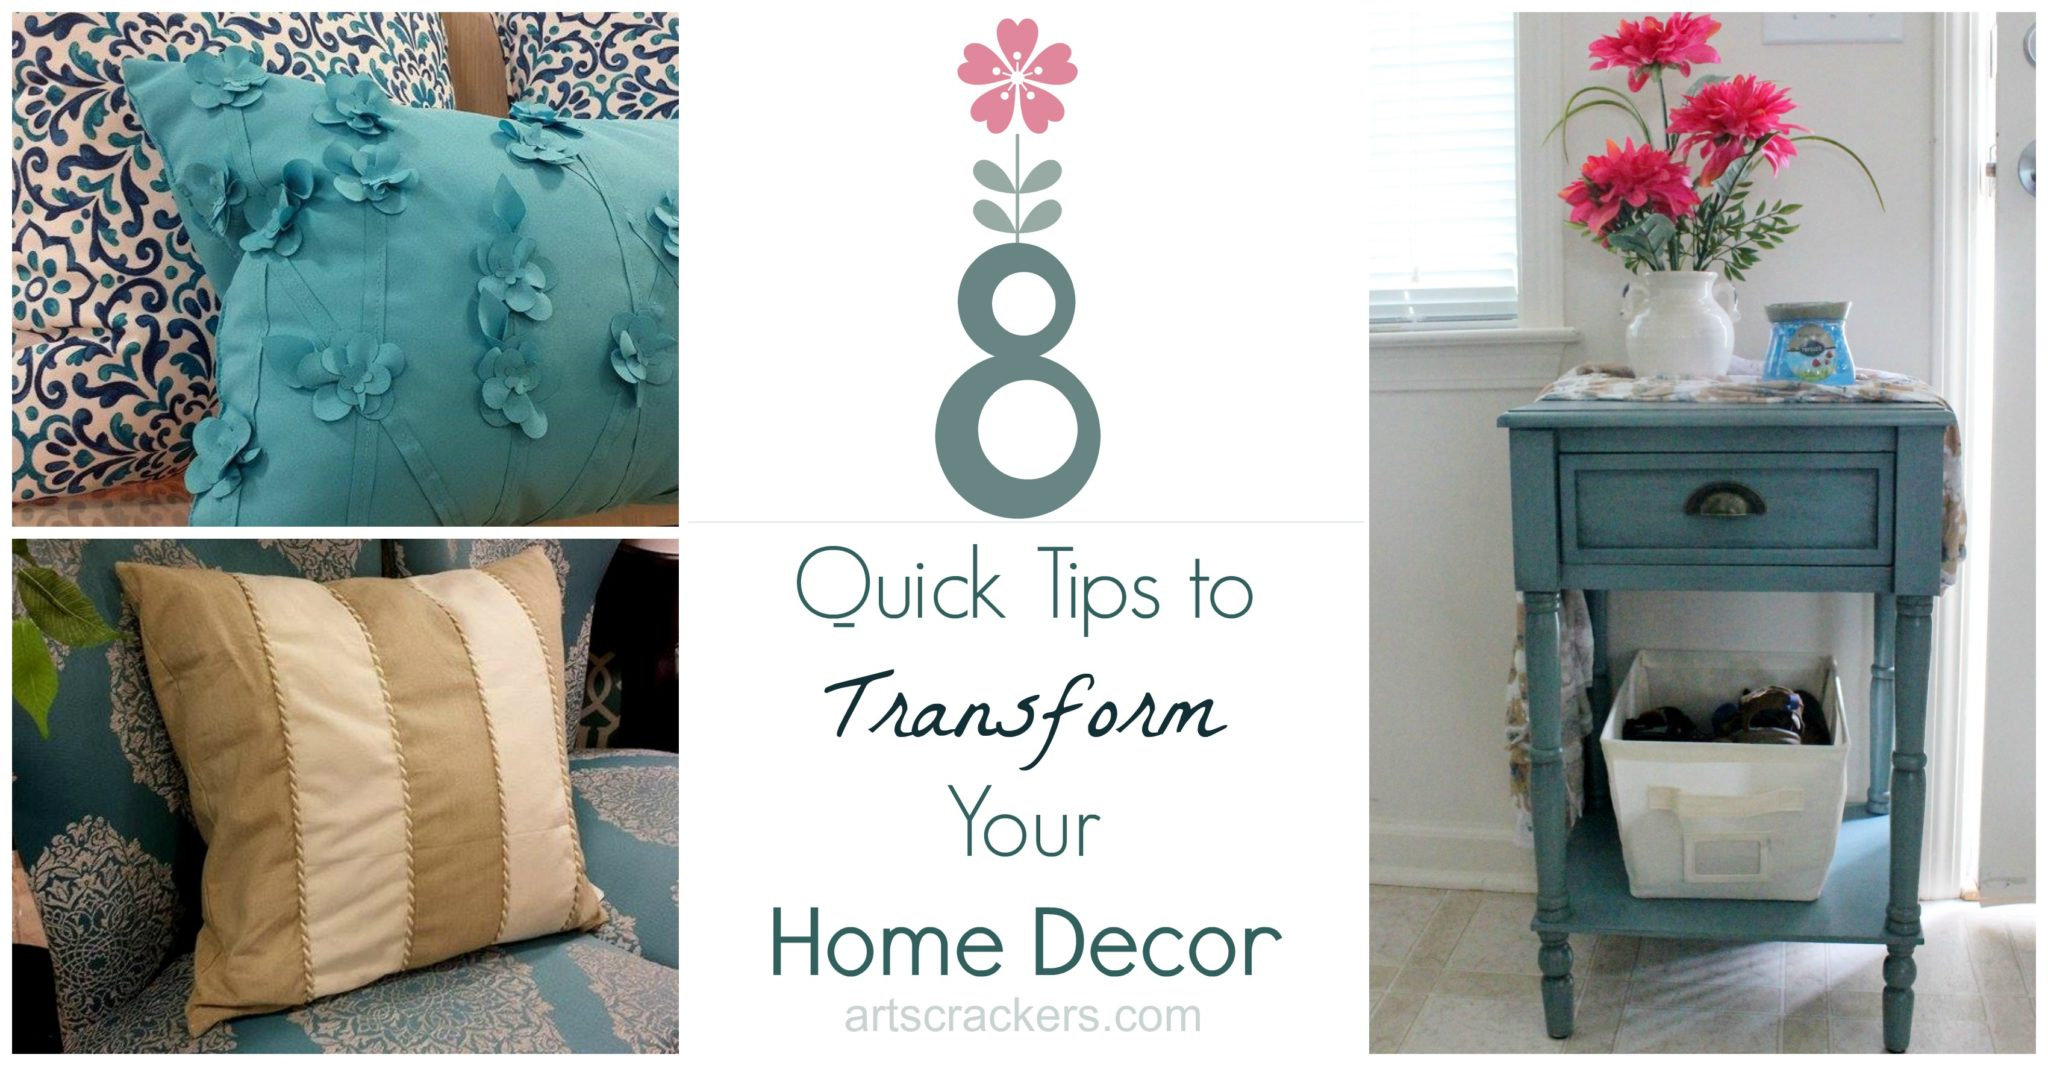 Renuzit 8 Quick Tips to Transform Your Home Decor. Click the picture to read more.